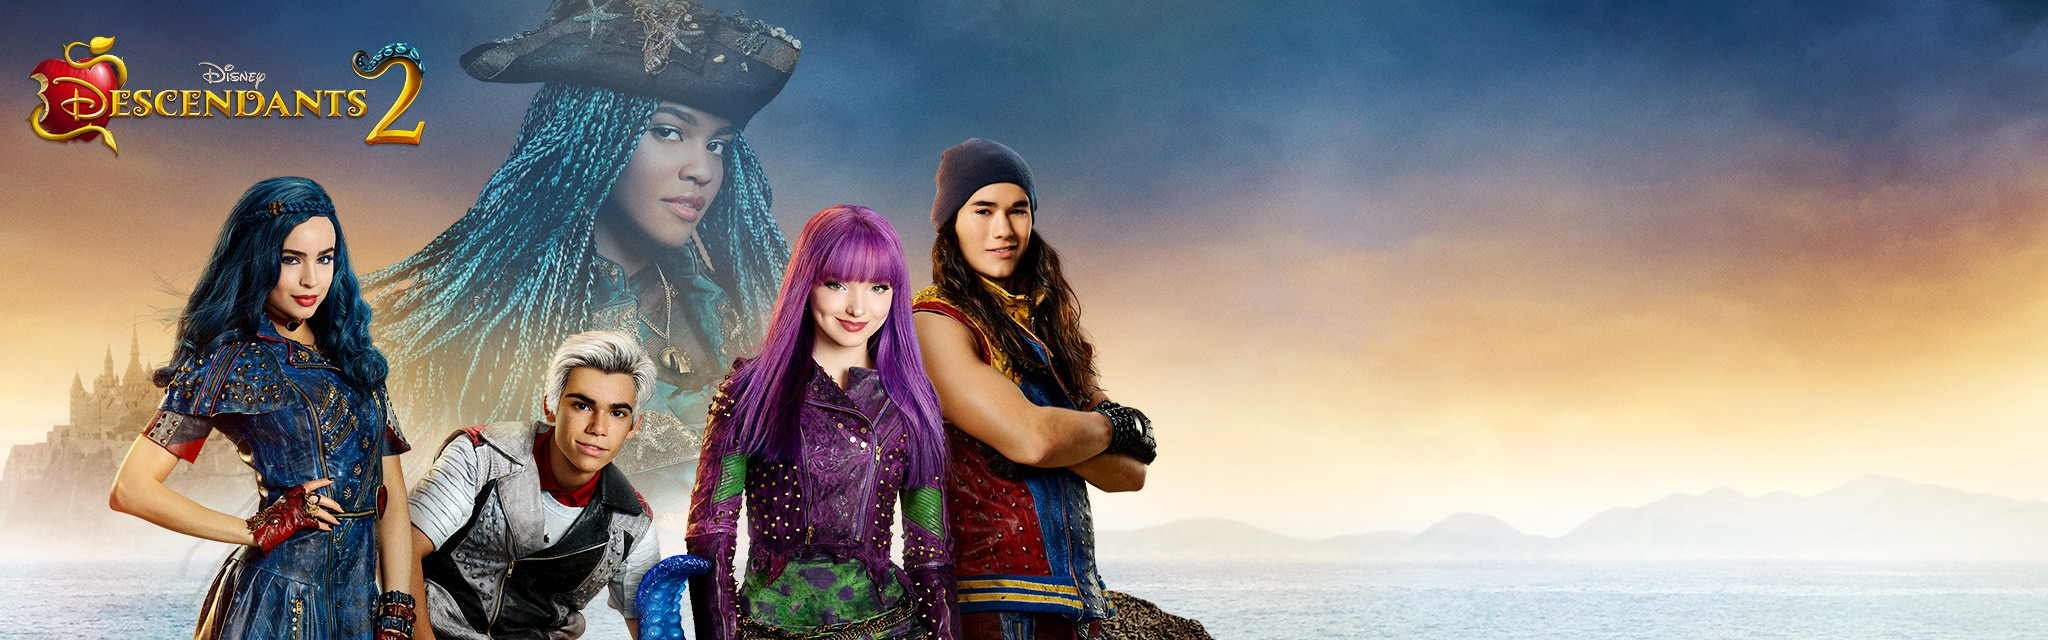 Descendants - Descendants 2 Soundtrack - Hero